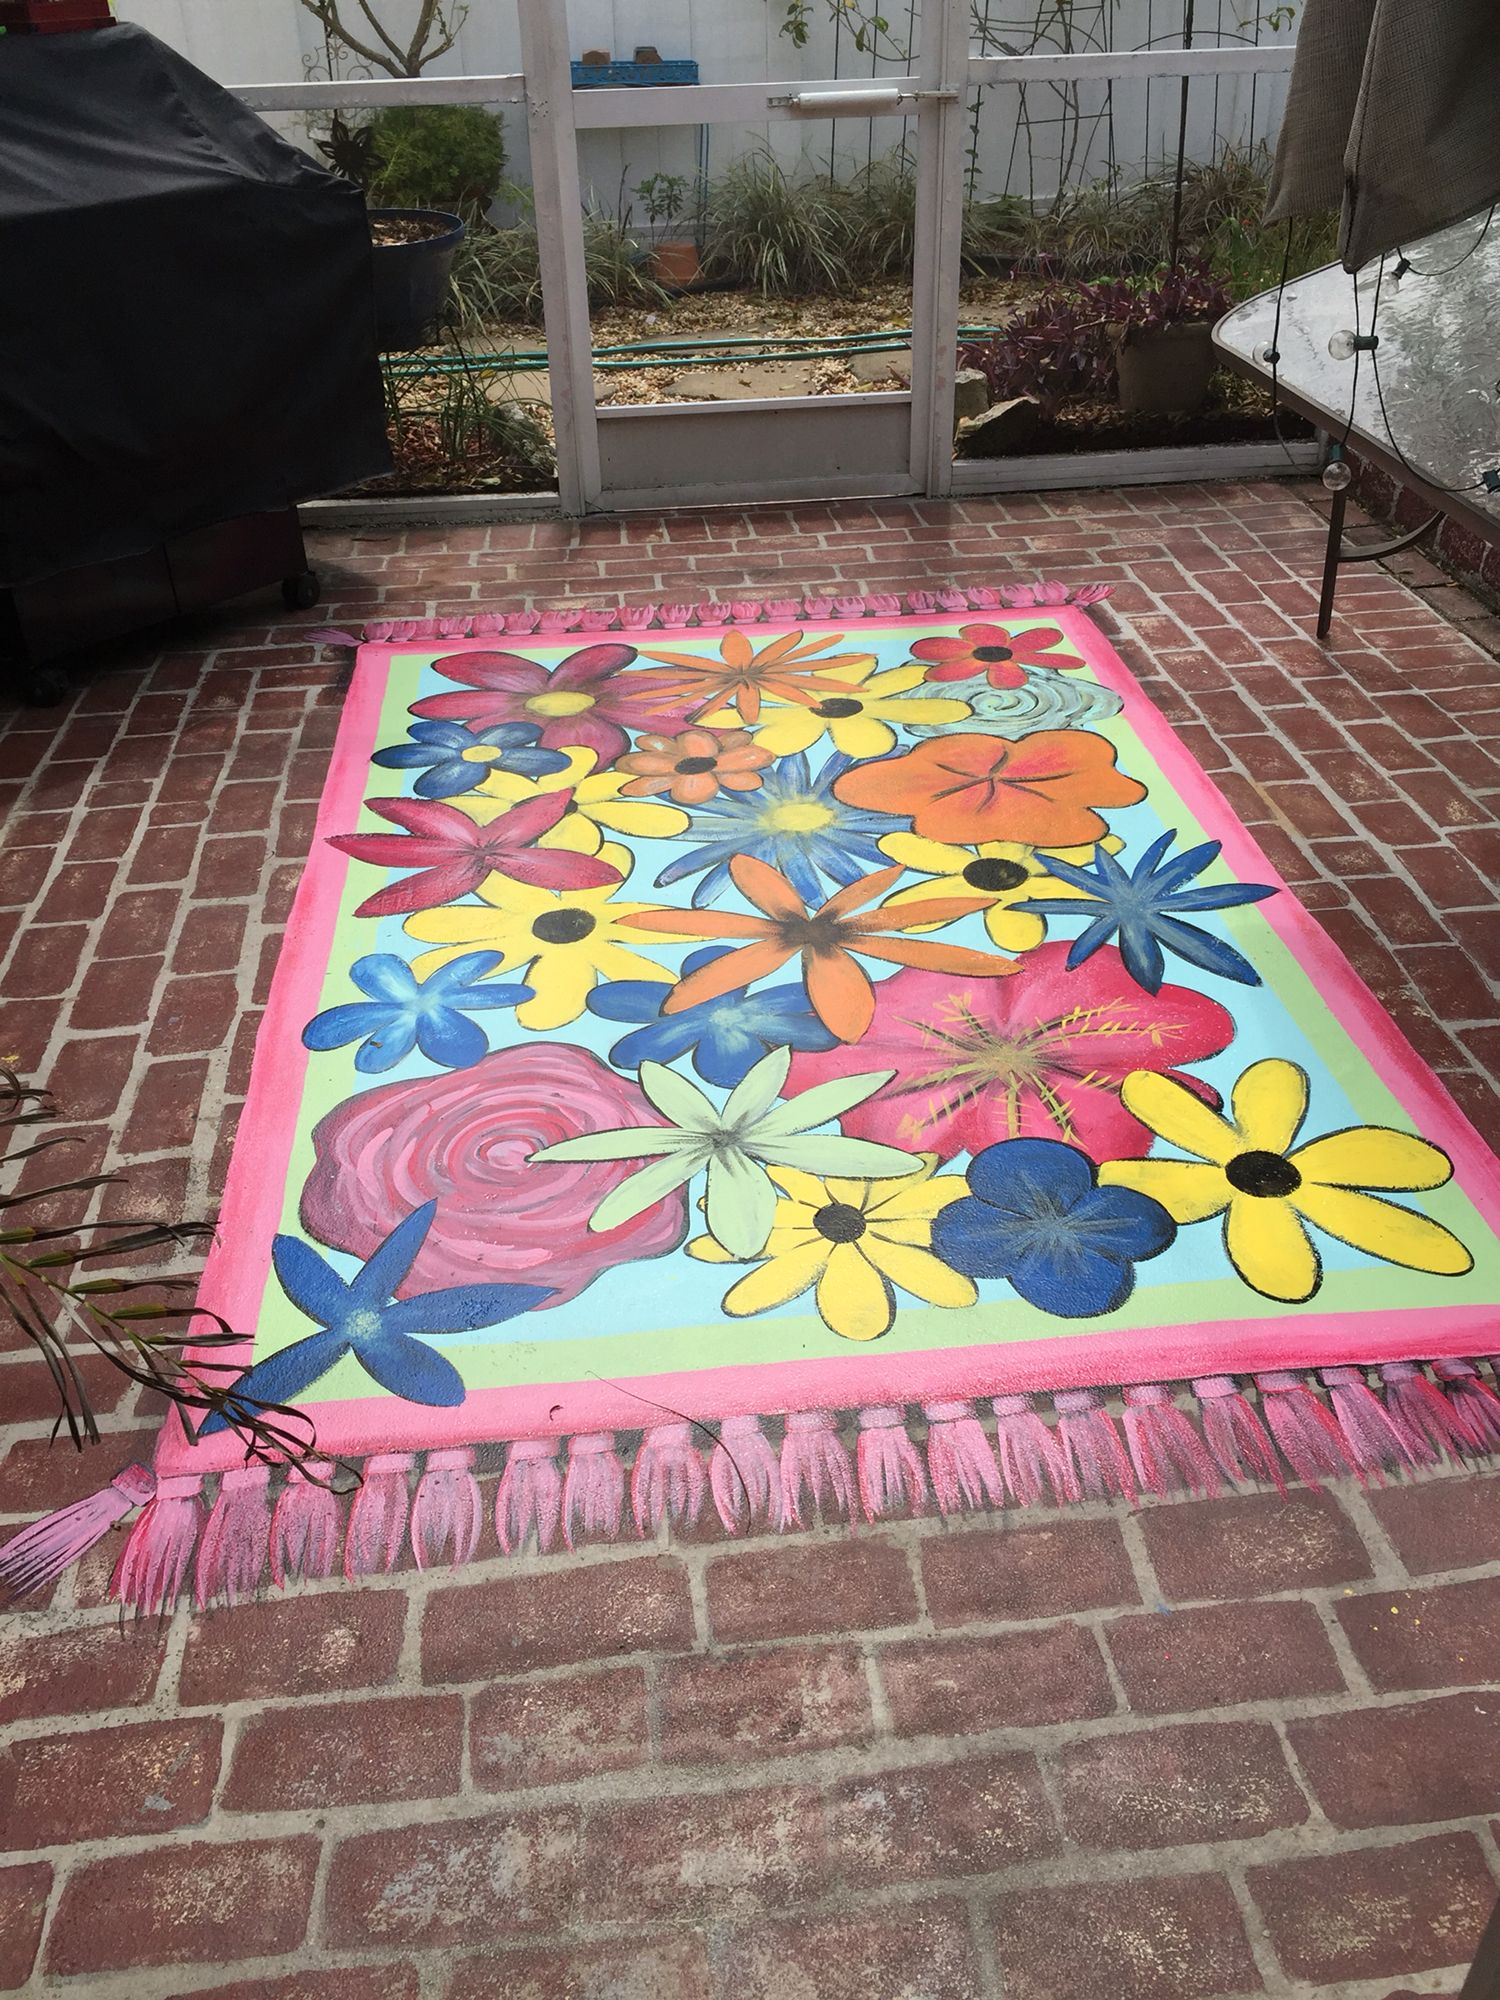 Painted Rug On Concrete Patio Painted Rug Painted Porch Floors